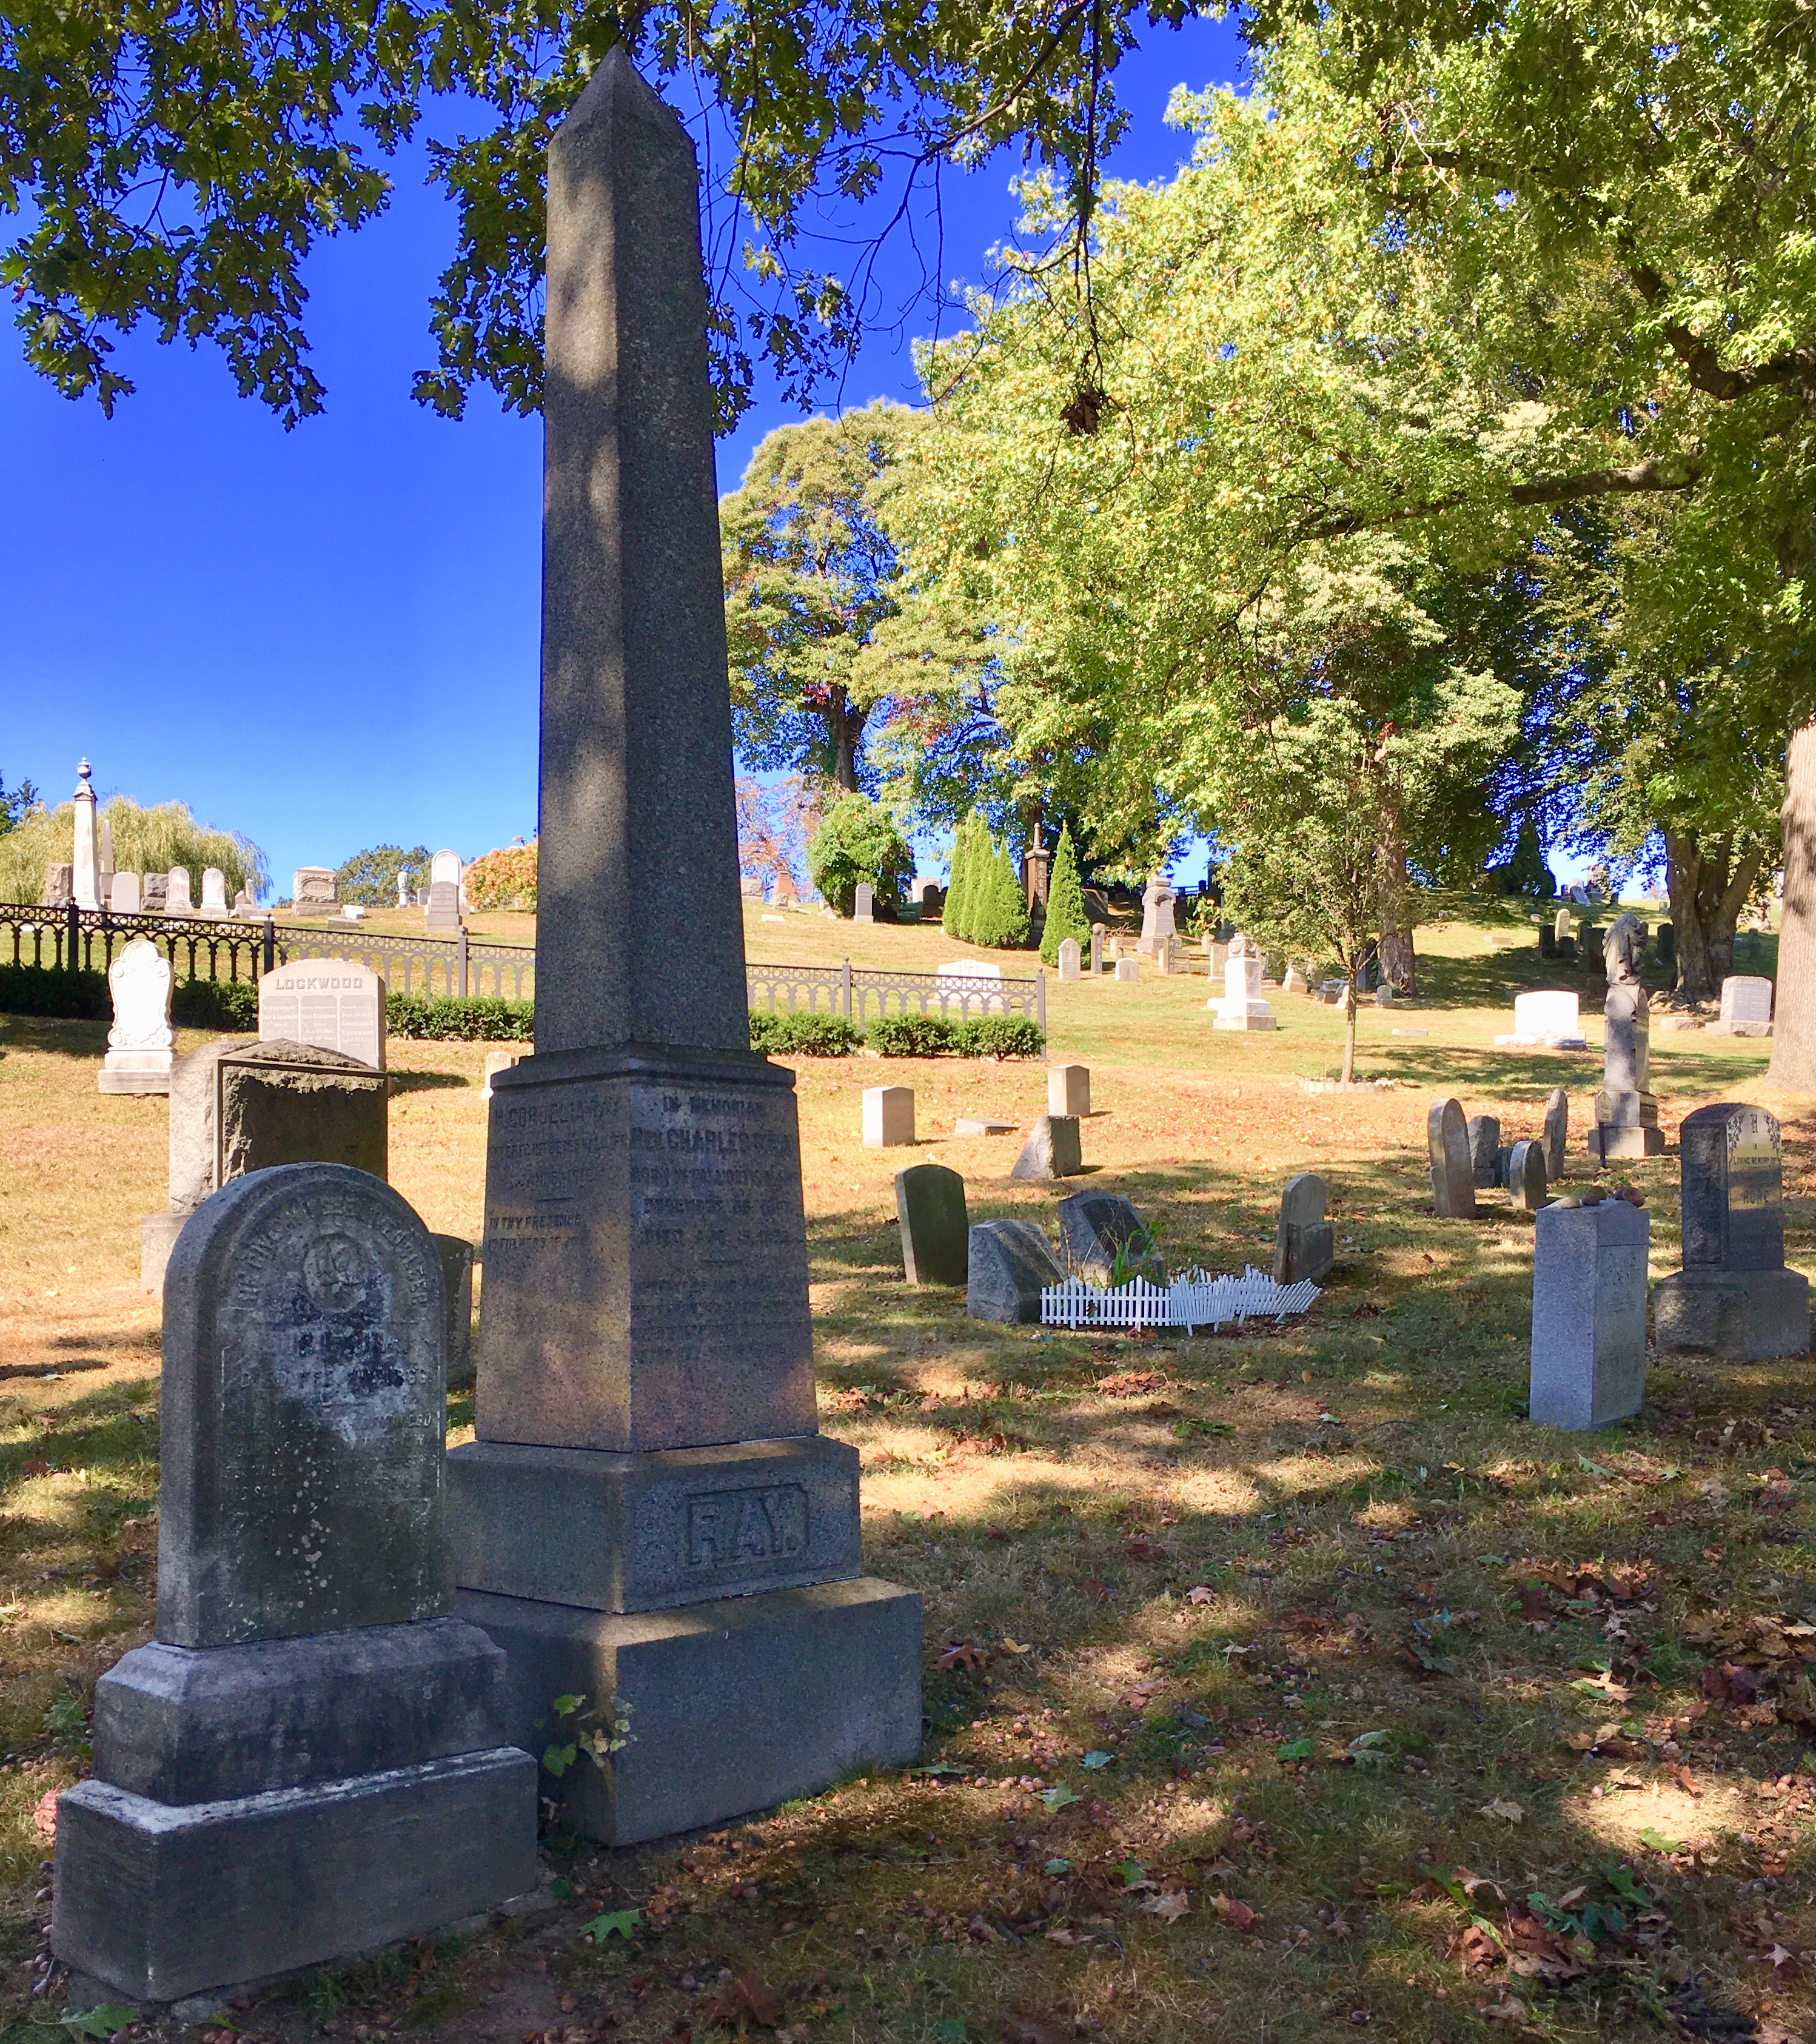 This obelisk stands at the graves of the Rev. Charles Ray and his daughter Charlotte Ray. Eagle photo by Lore Croghan